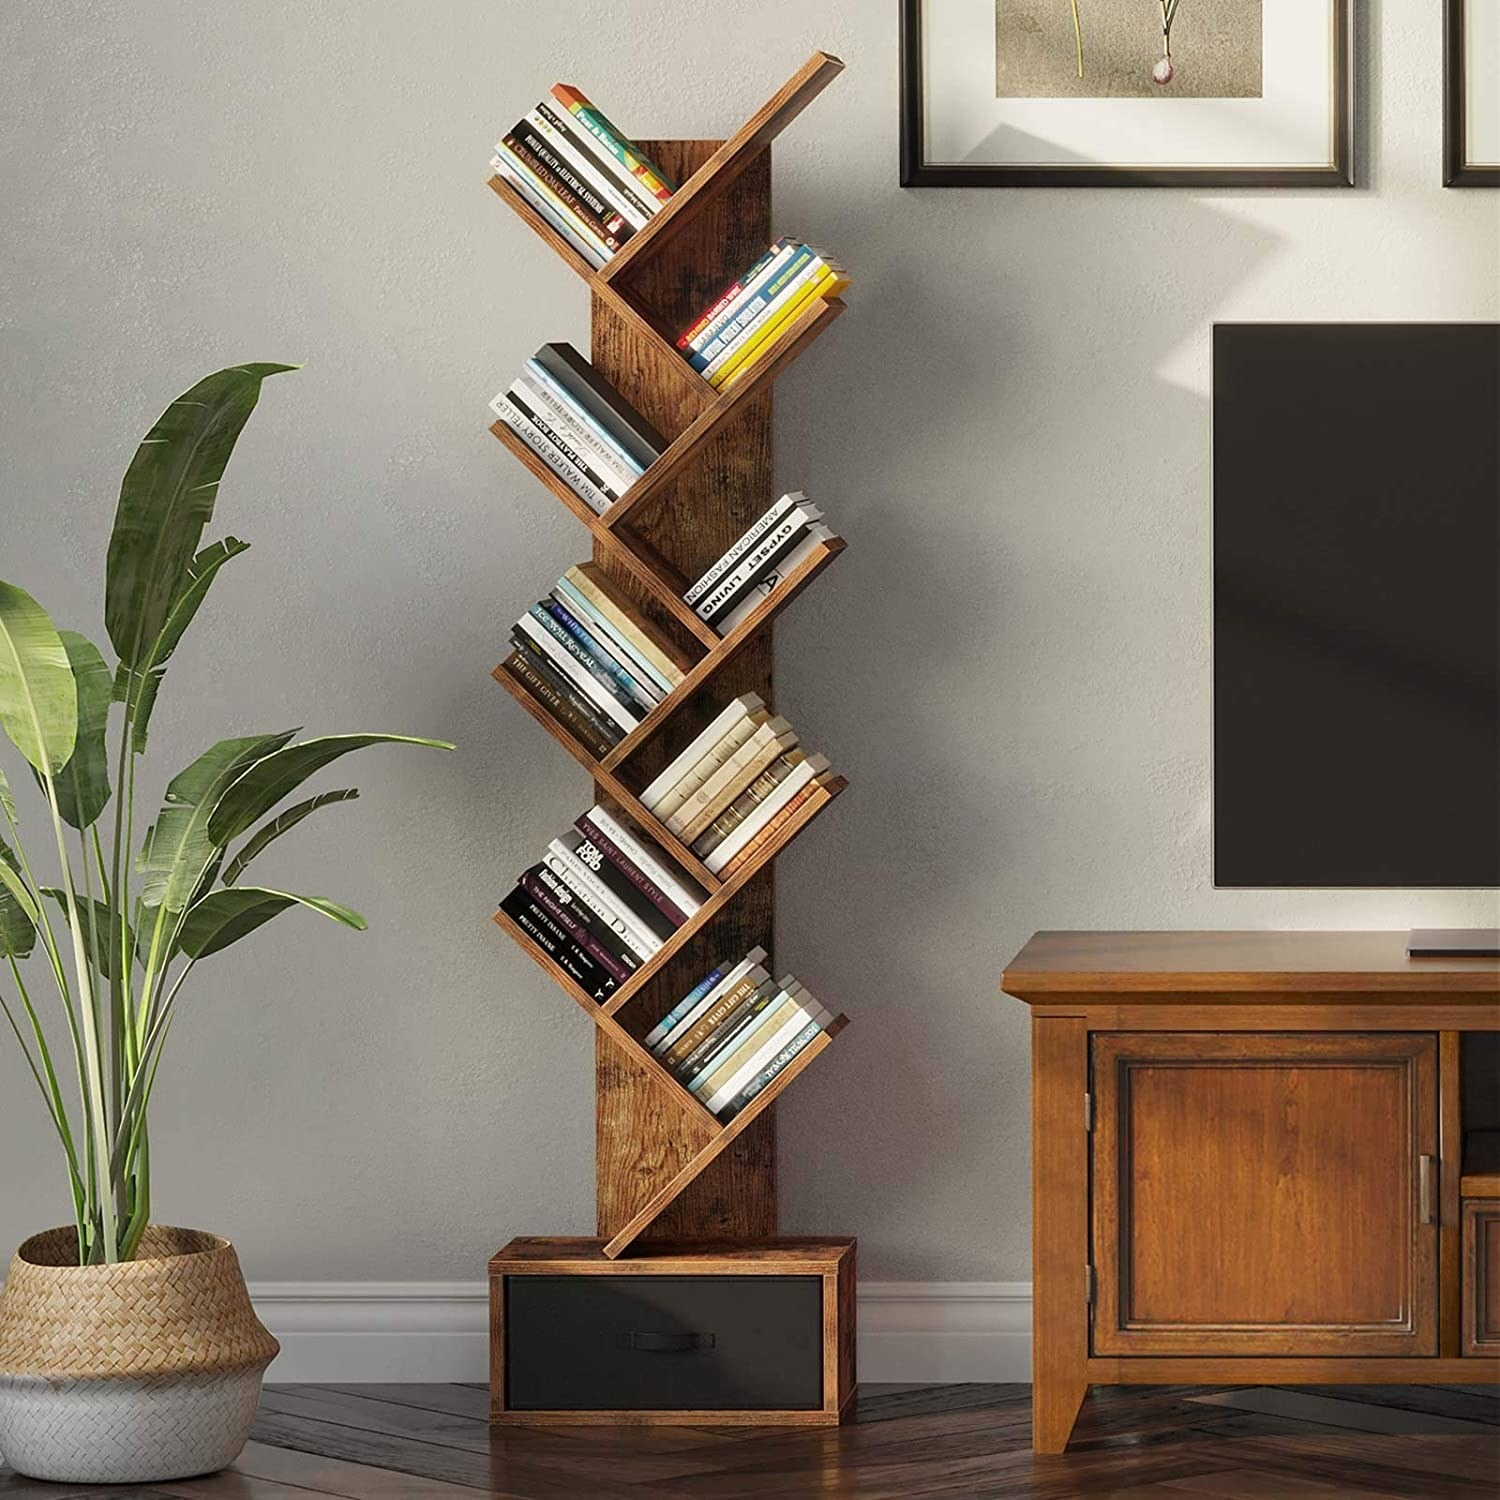 The tree with books on it